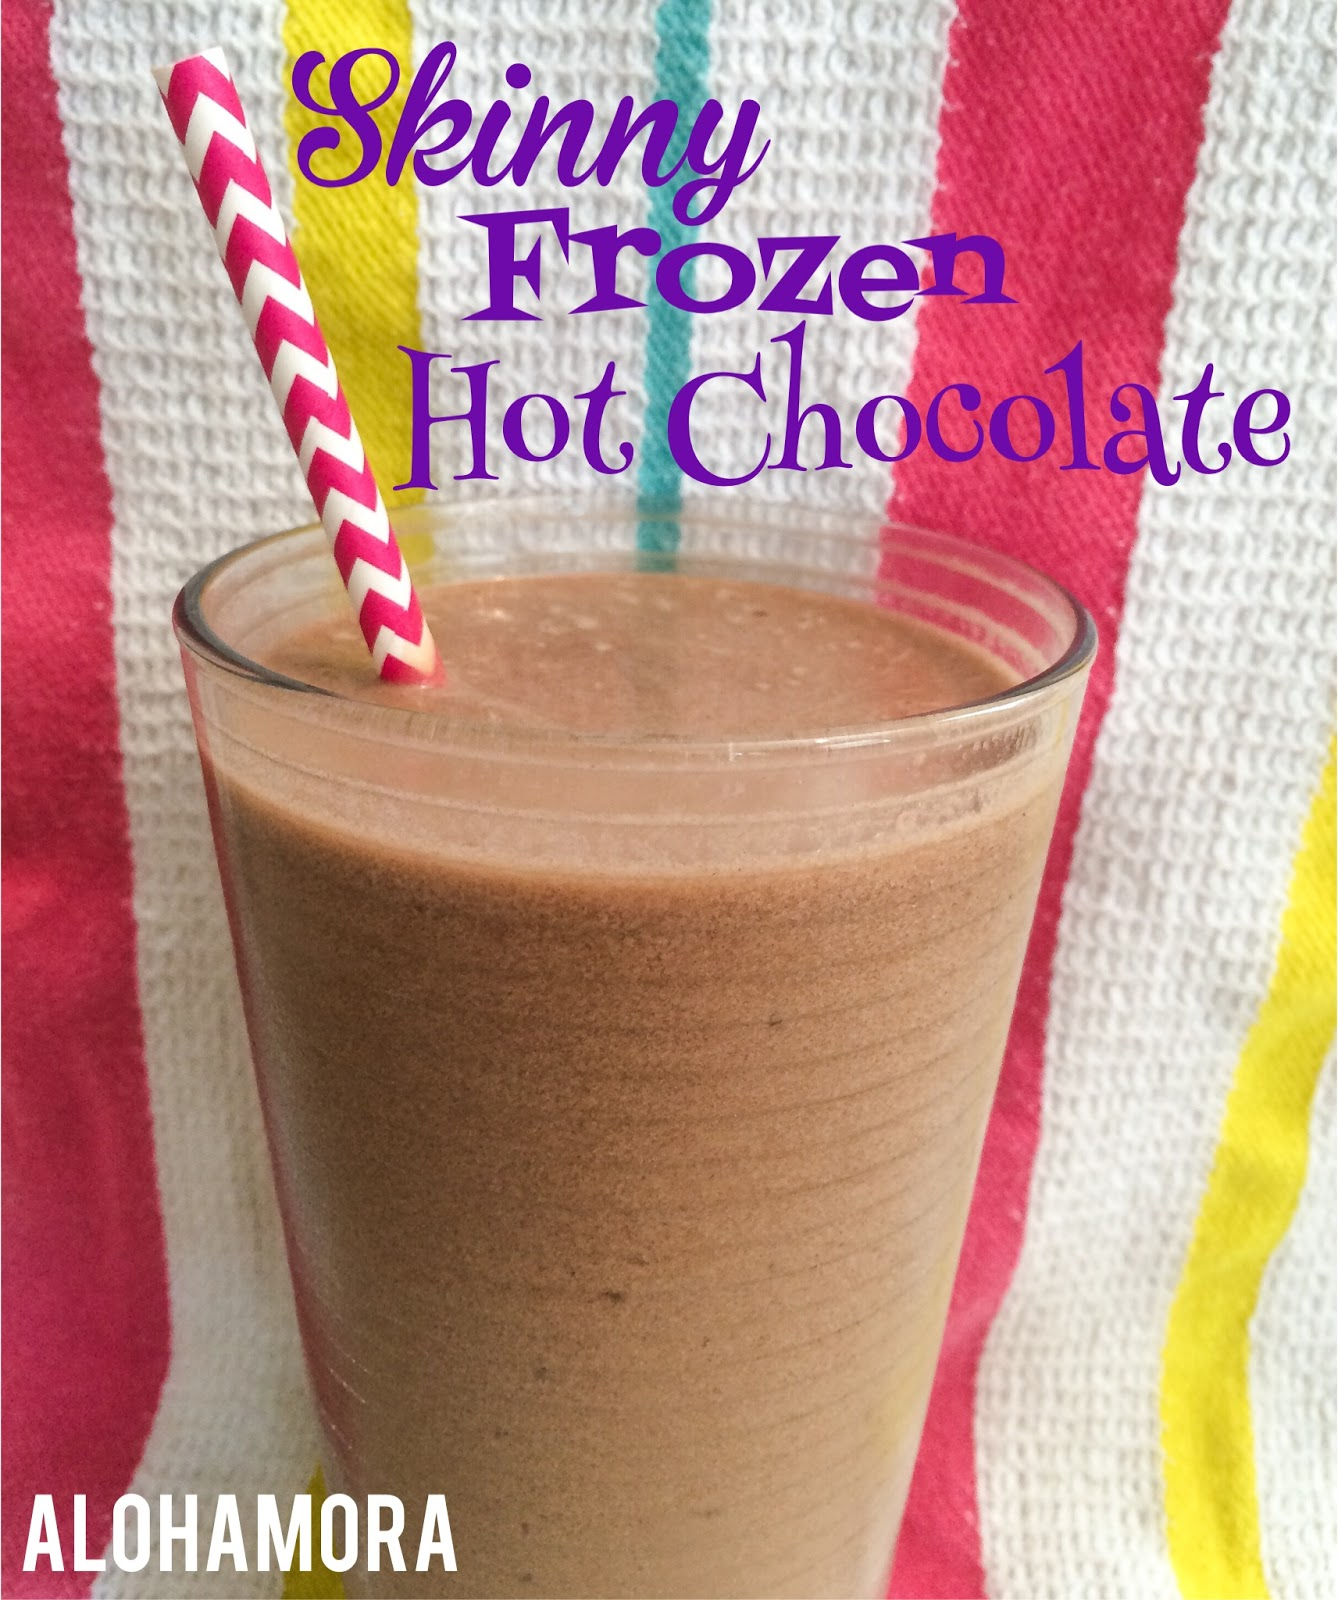 Knight's Bus Skinny Frozen Hot Chocolate is a lite treat that is diet friendly, gluten free, easily dairy free and oh so delicious treat even the healthy conscience Harry Potter would love on a hot summer day. Alohamora Open a Book http://alohamoraopenabook.blogspot.com/